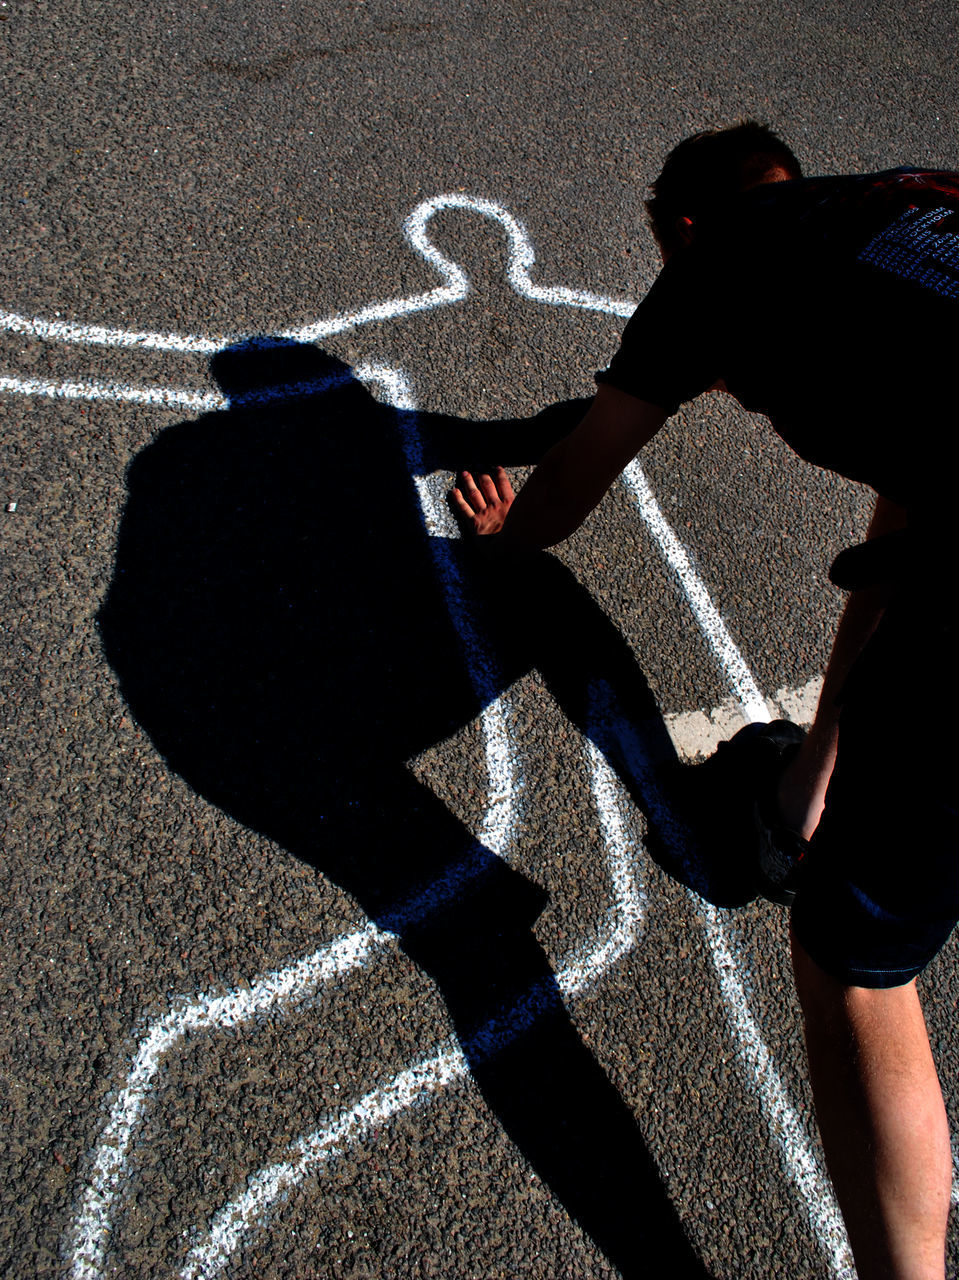 shadow, real people, lifestyles, sunlight, one person, leisure activity, asphalt, road, day, high angle view, outdoors, childhood, men, running track, hopscotch, low section, people